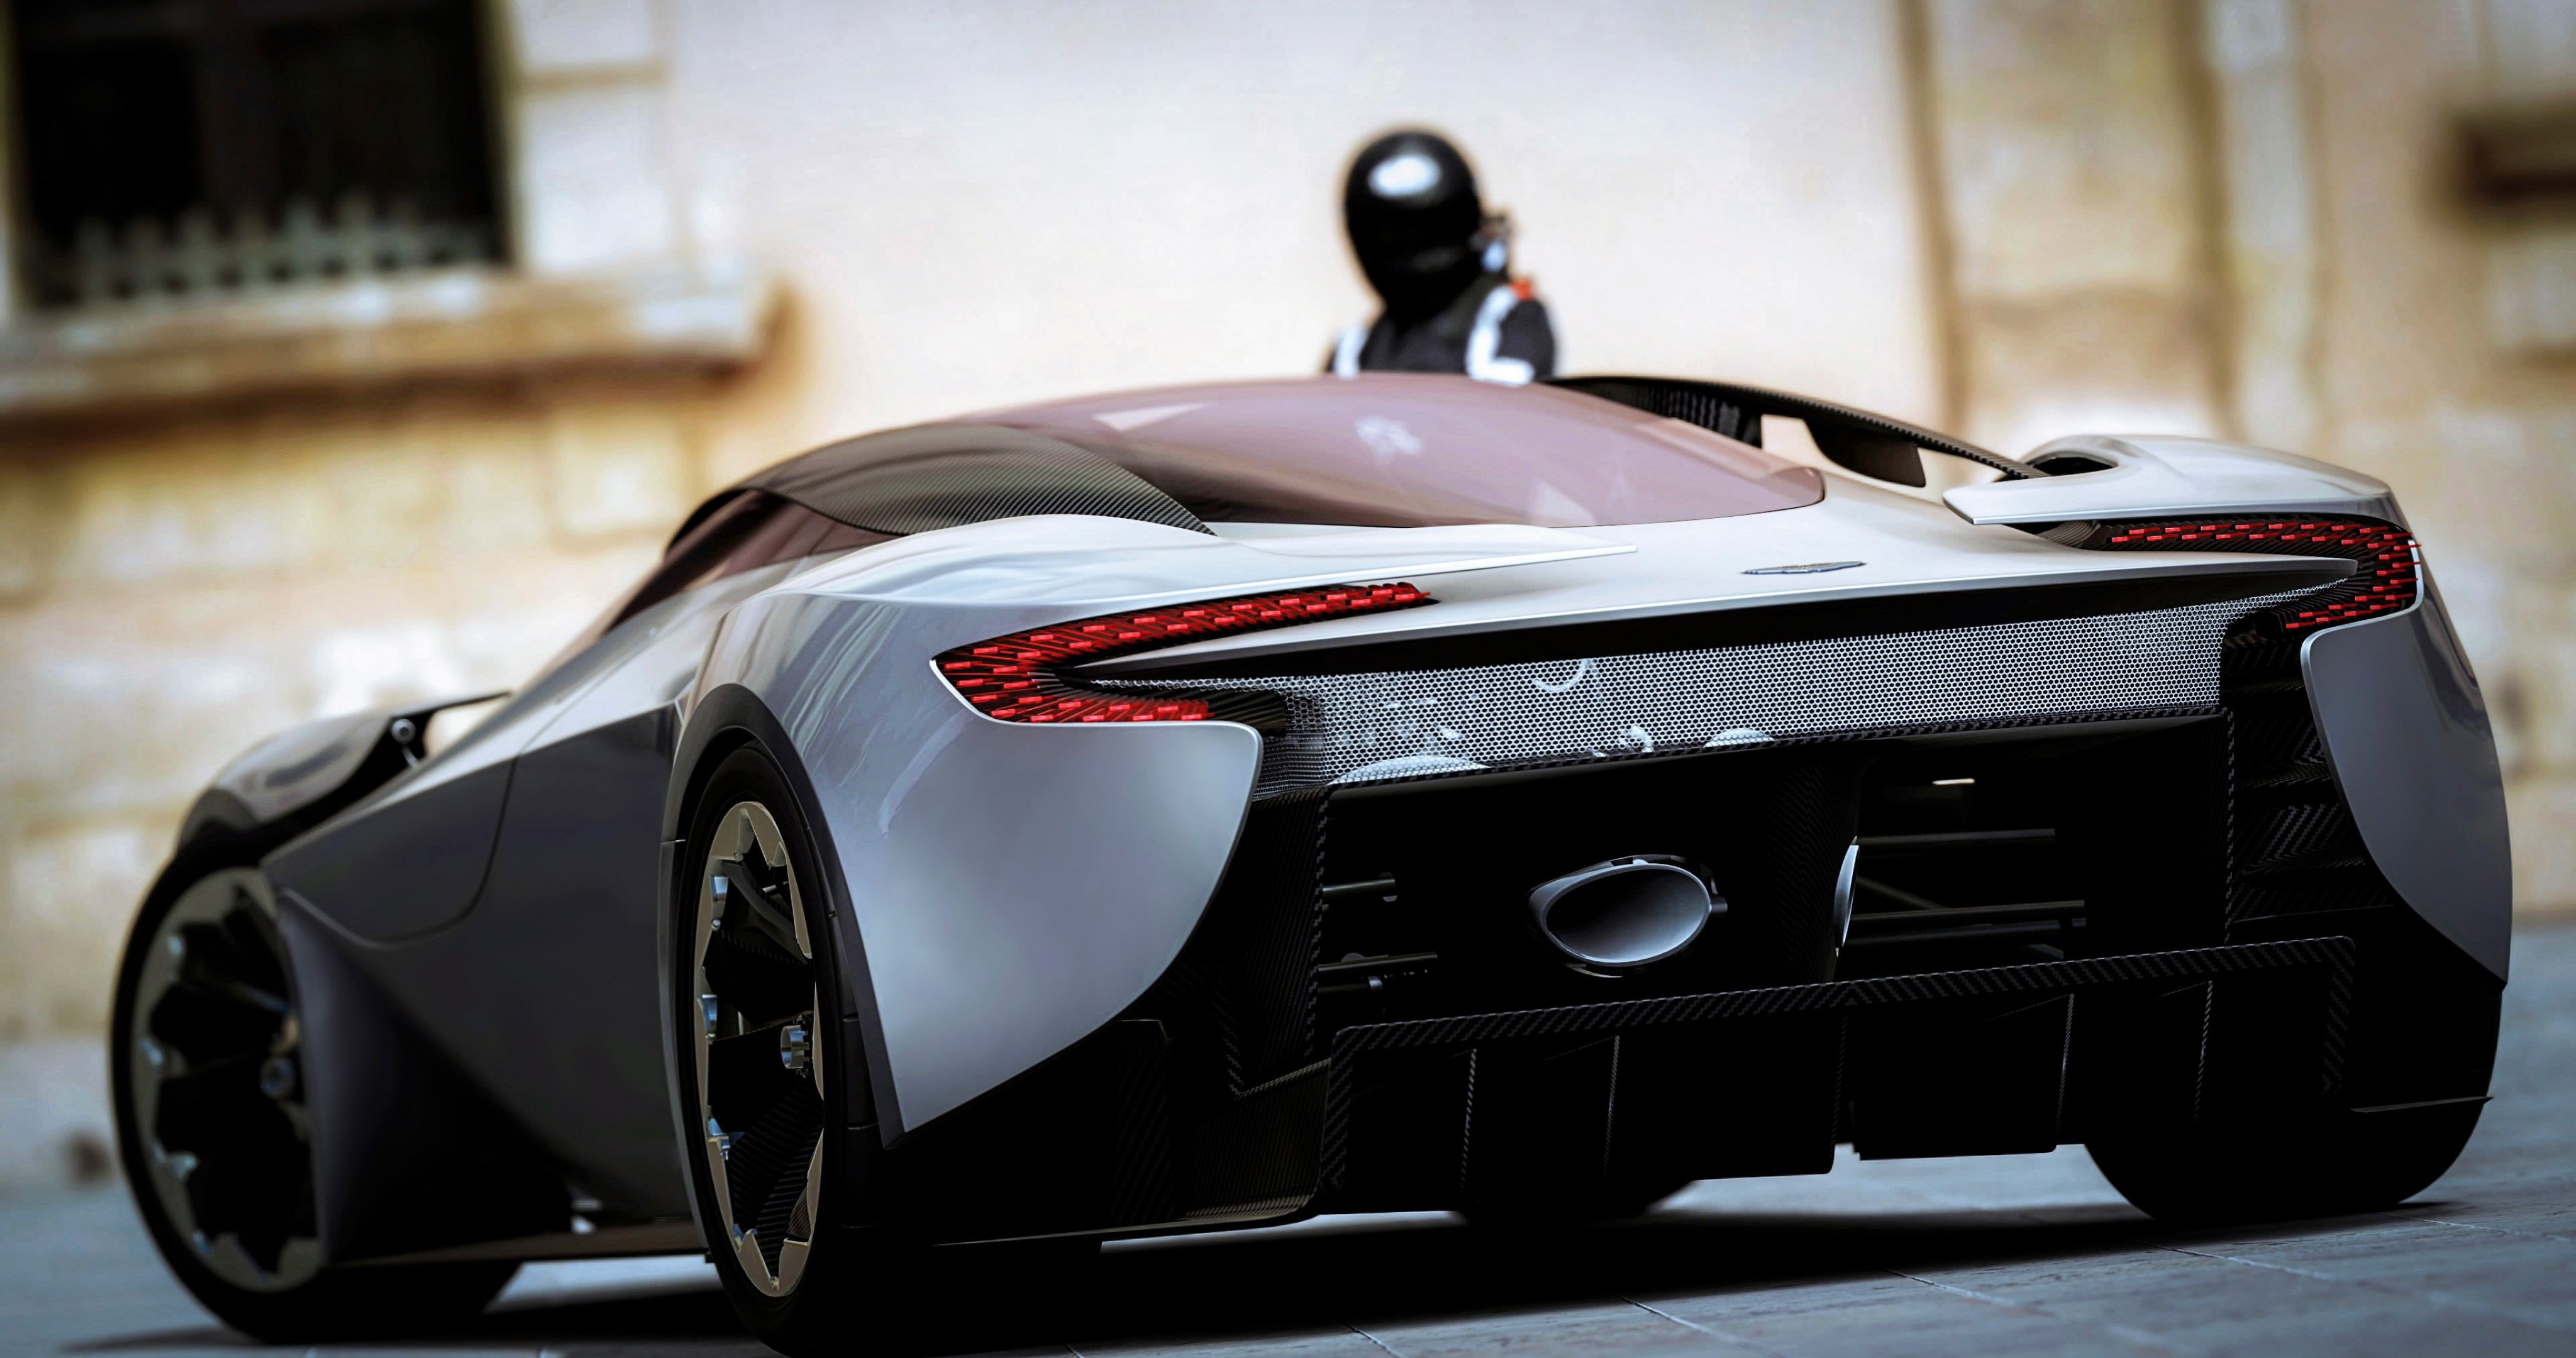 Toyota Ft1 Sports Car 4k Ultra Hd Wallpaper » High Quality